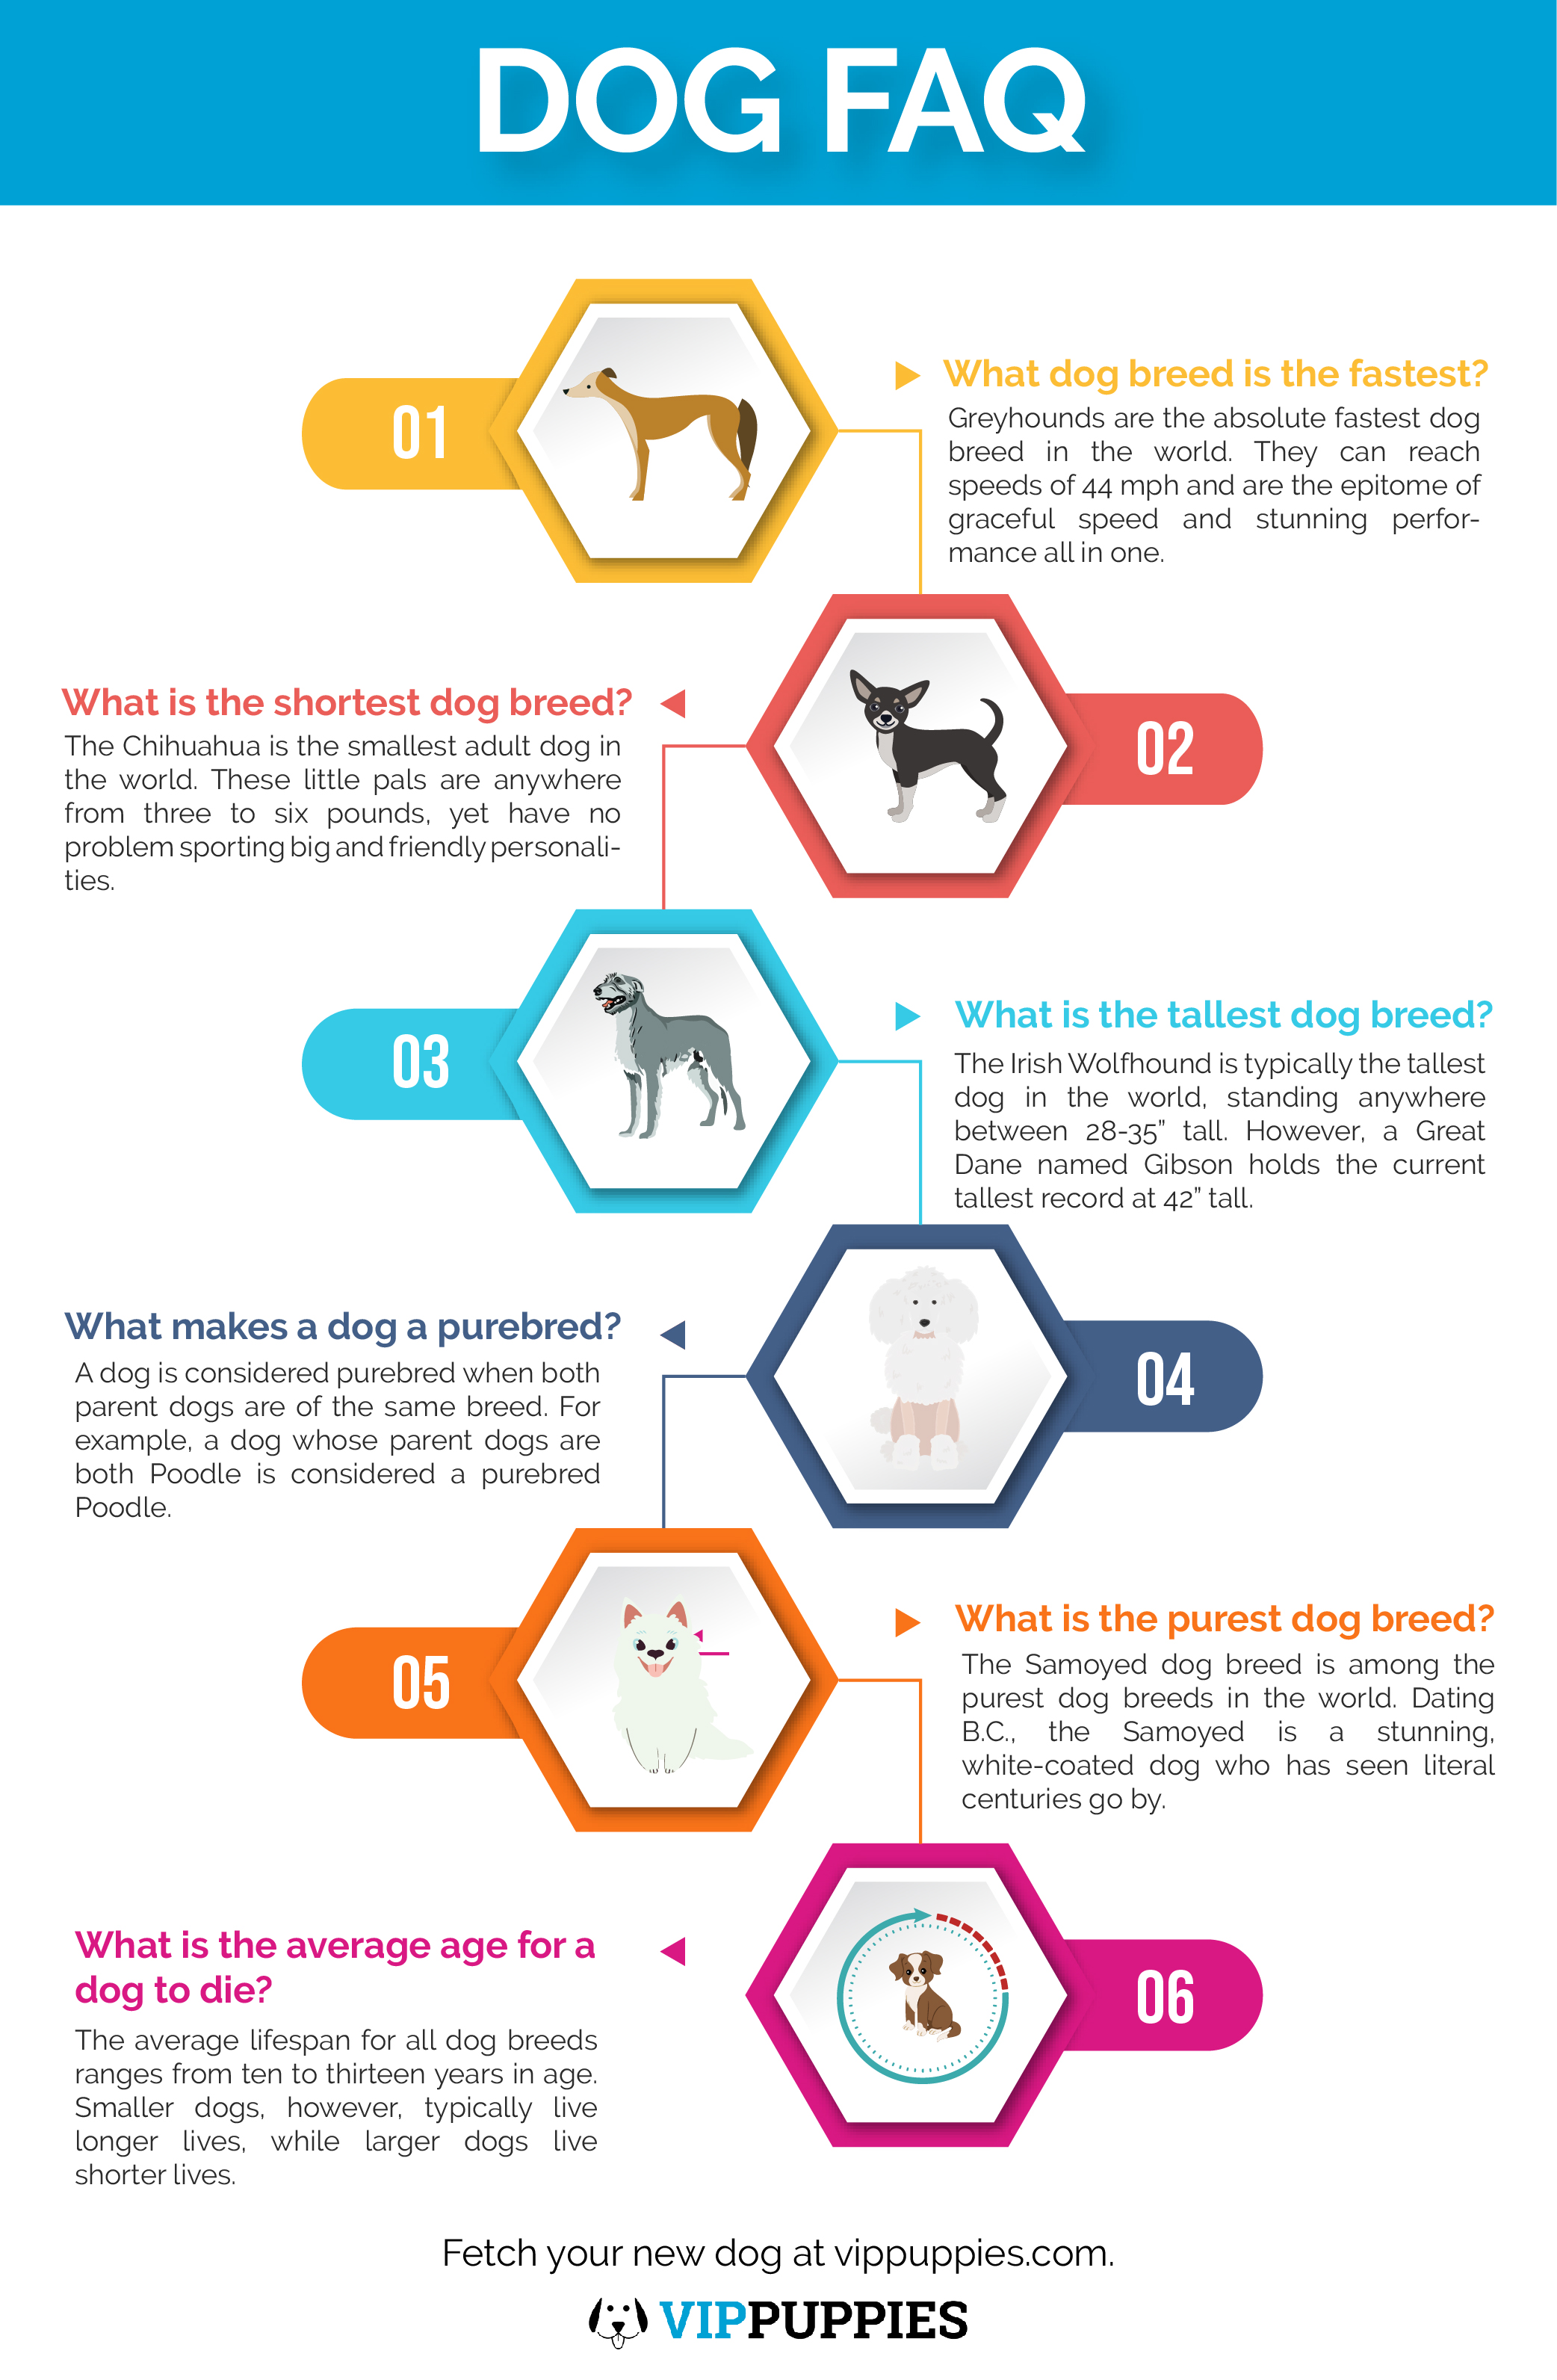 Frequently asked questions about dogs infographic.